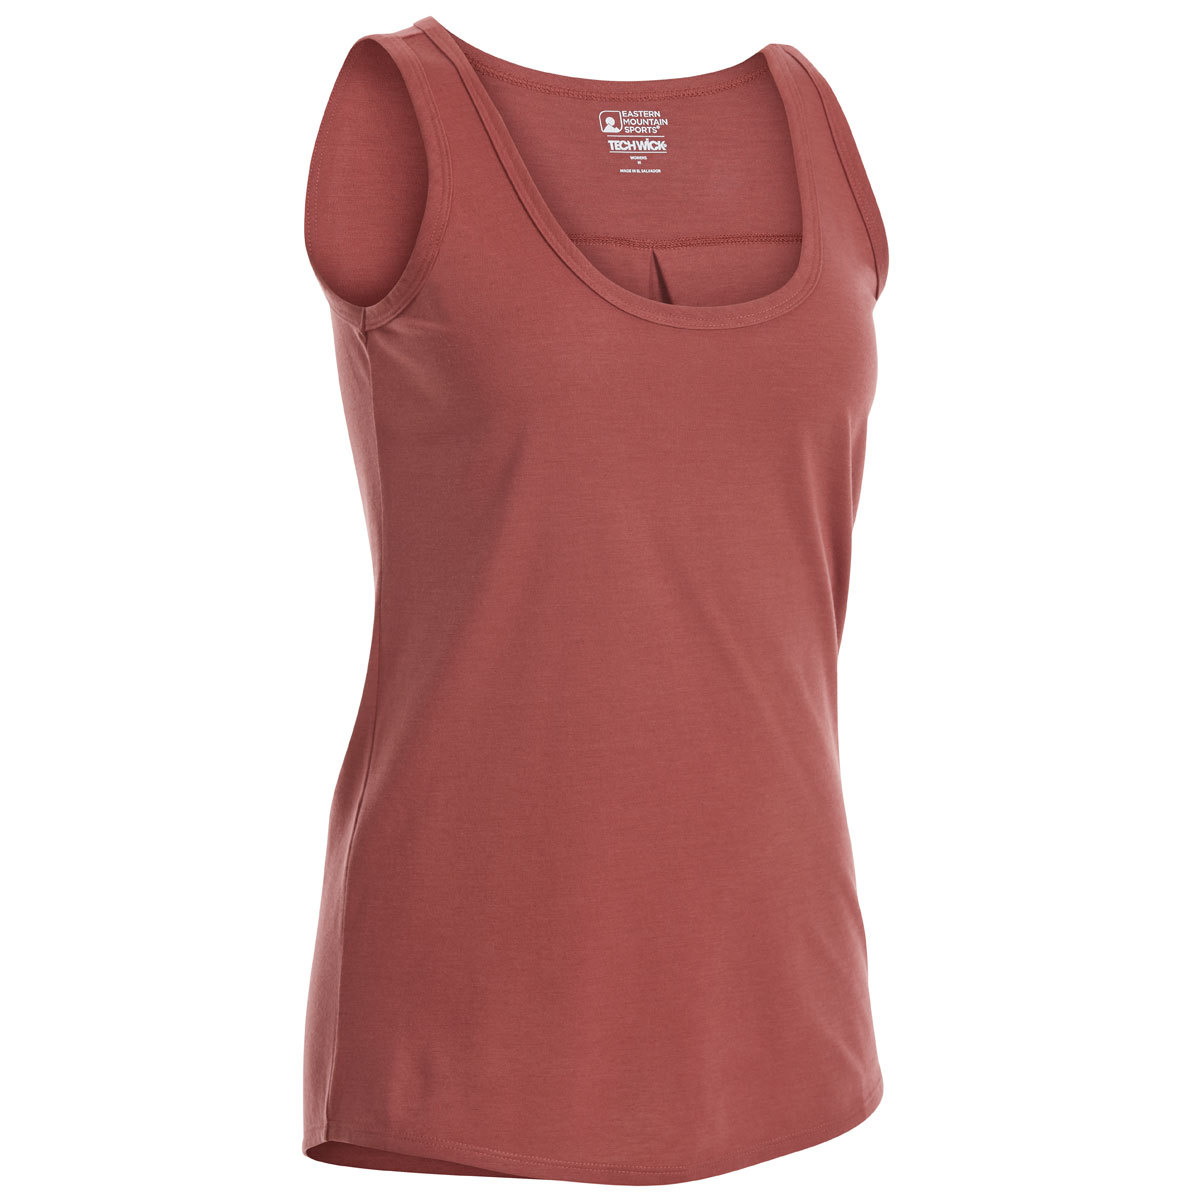 Ems Women's Techwick Vital Tank Top - Red, M